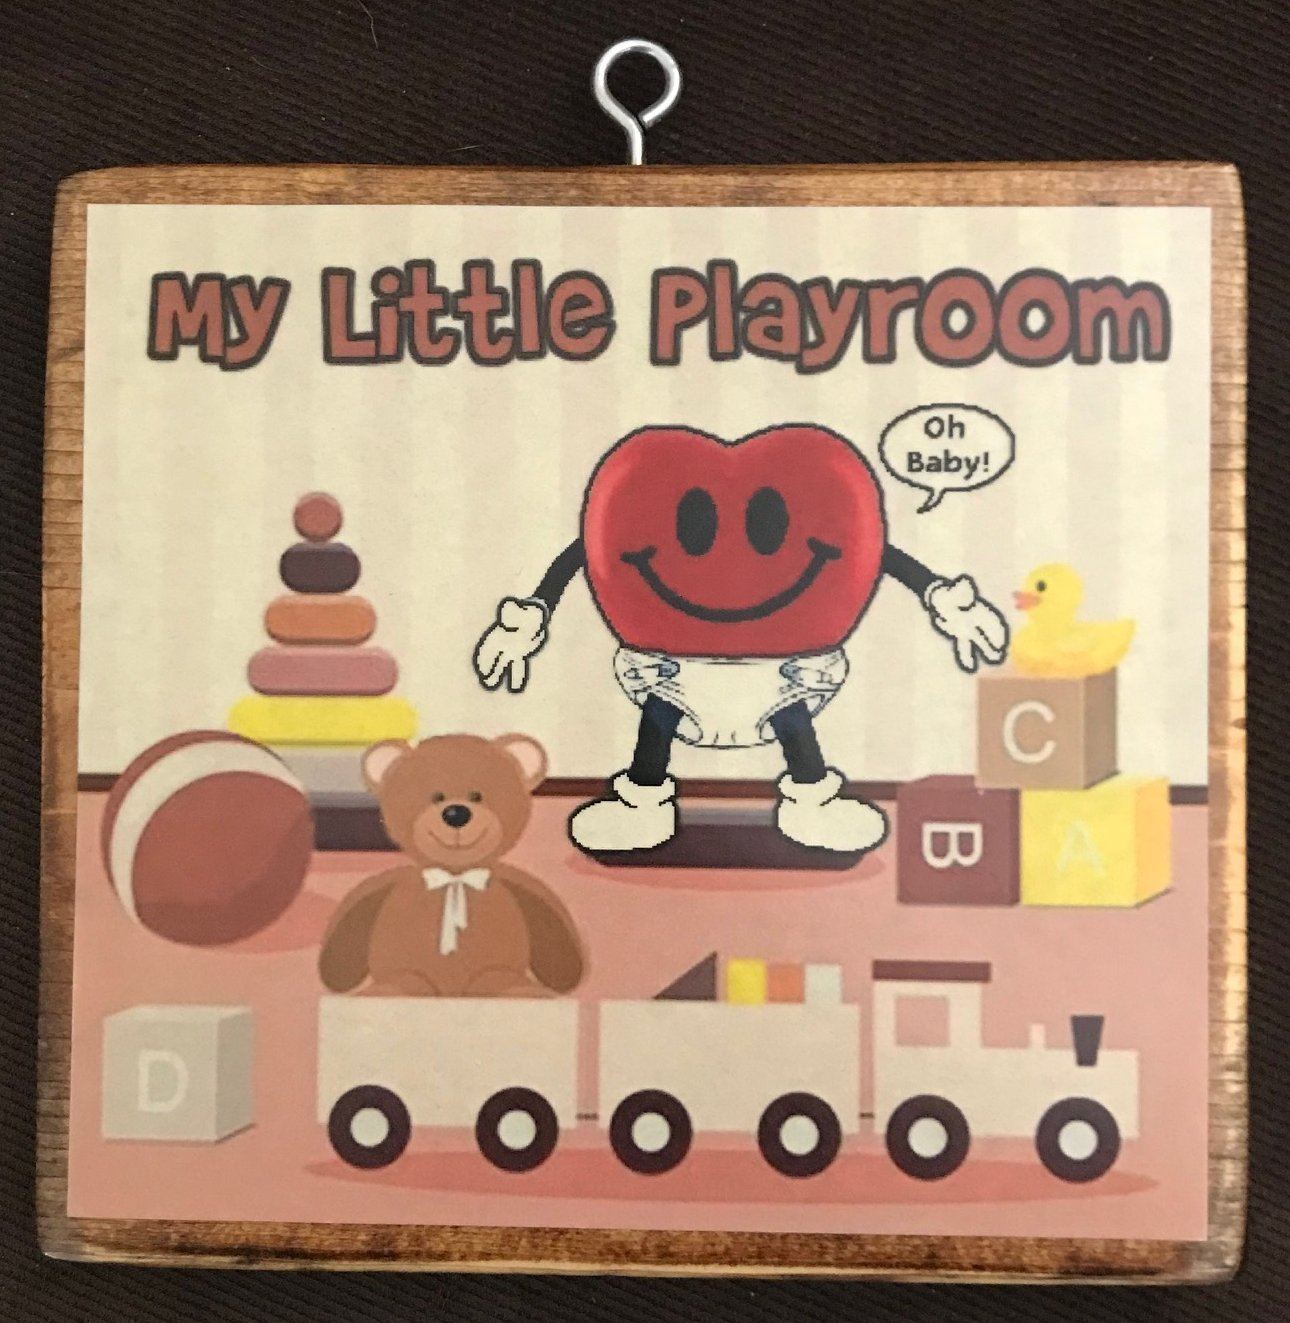 My Little Playroom Plaque